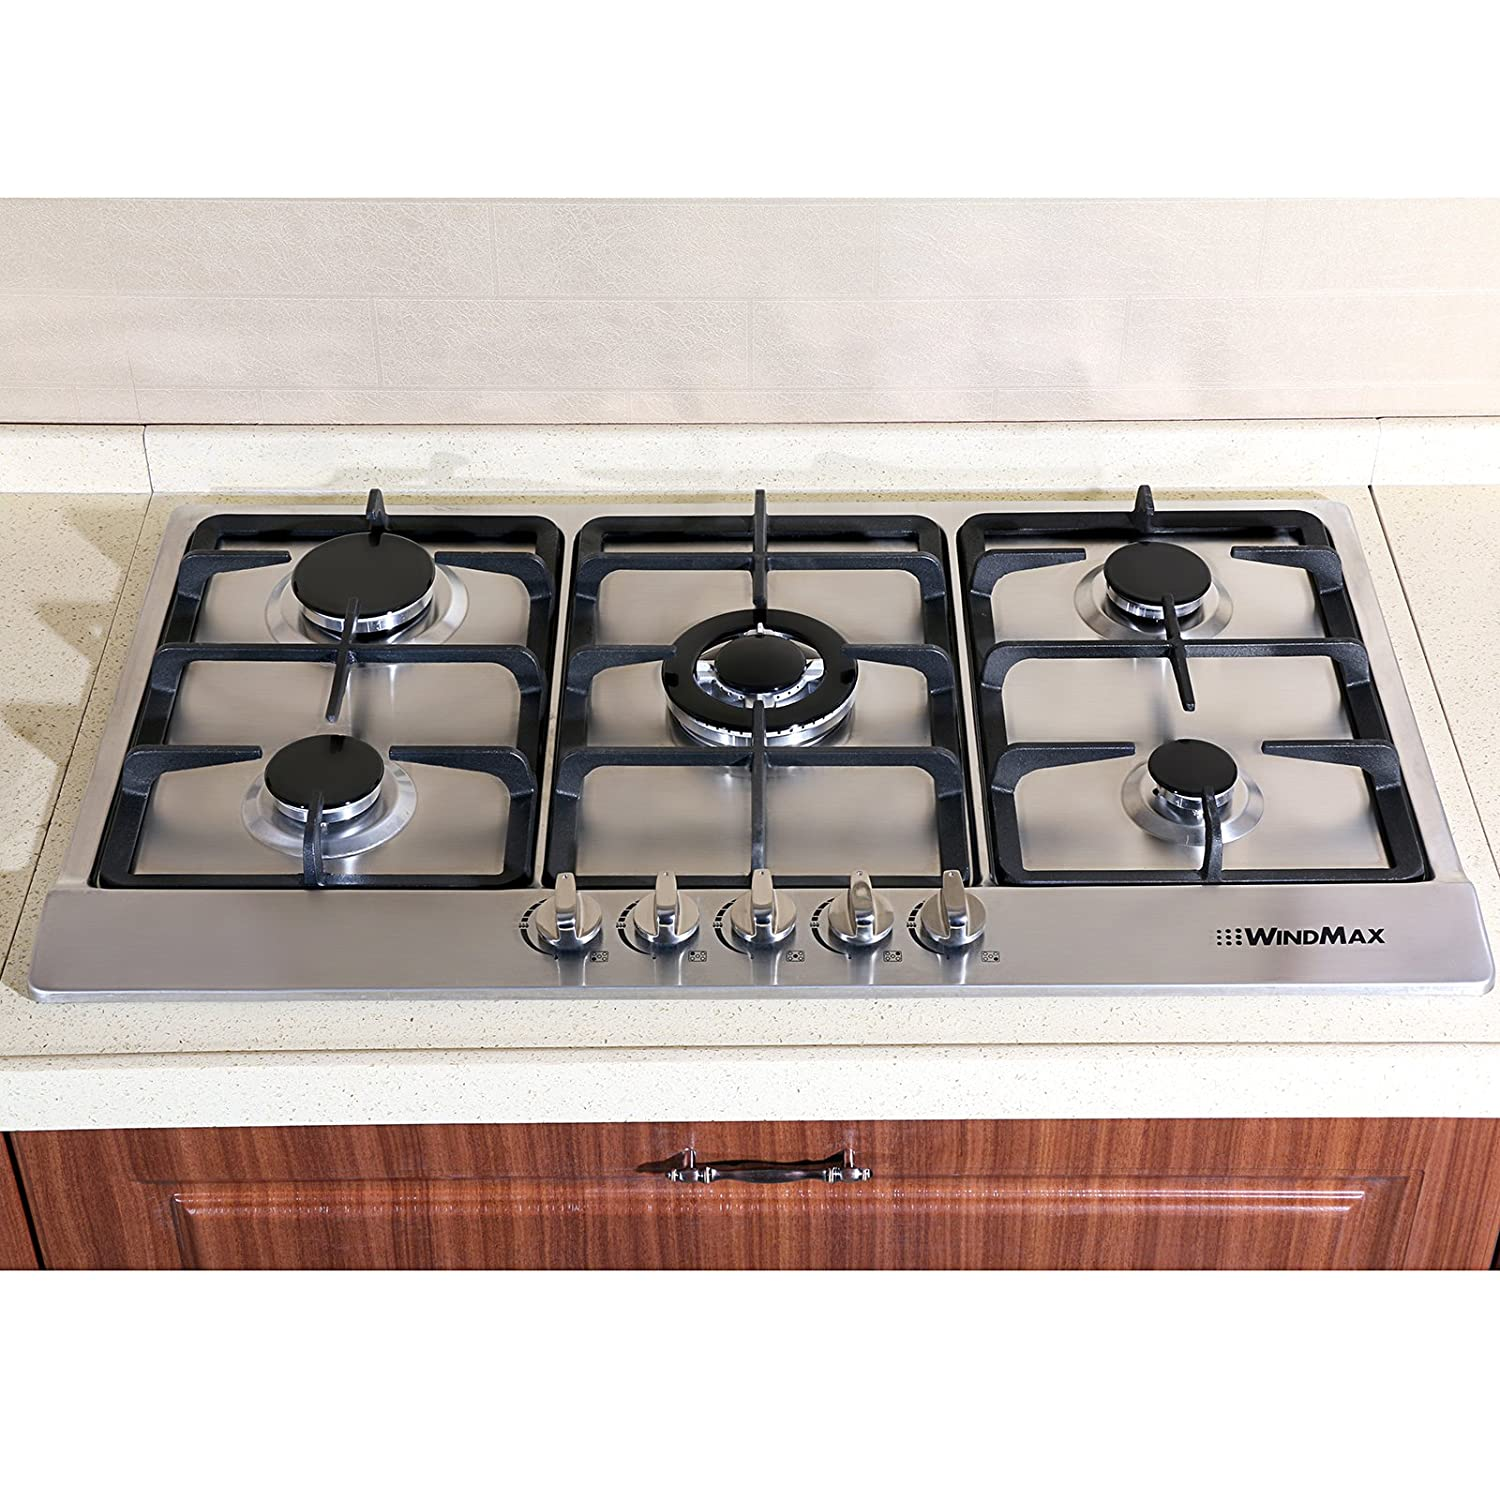 Gas Stainless Steel Cooktop Amazoncom Windmax 34 Electric Stainless Steel Built In Kitchen